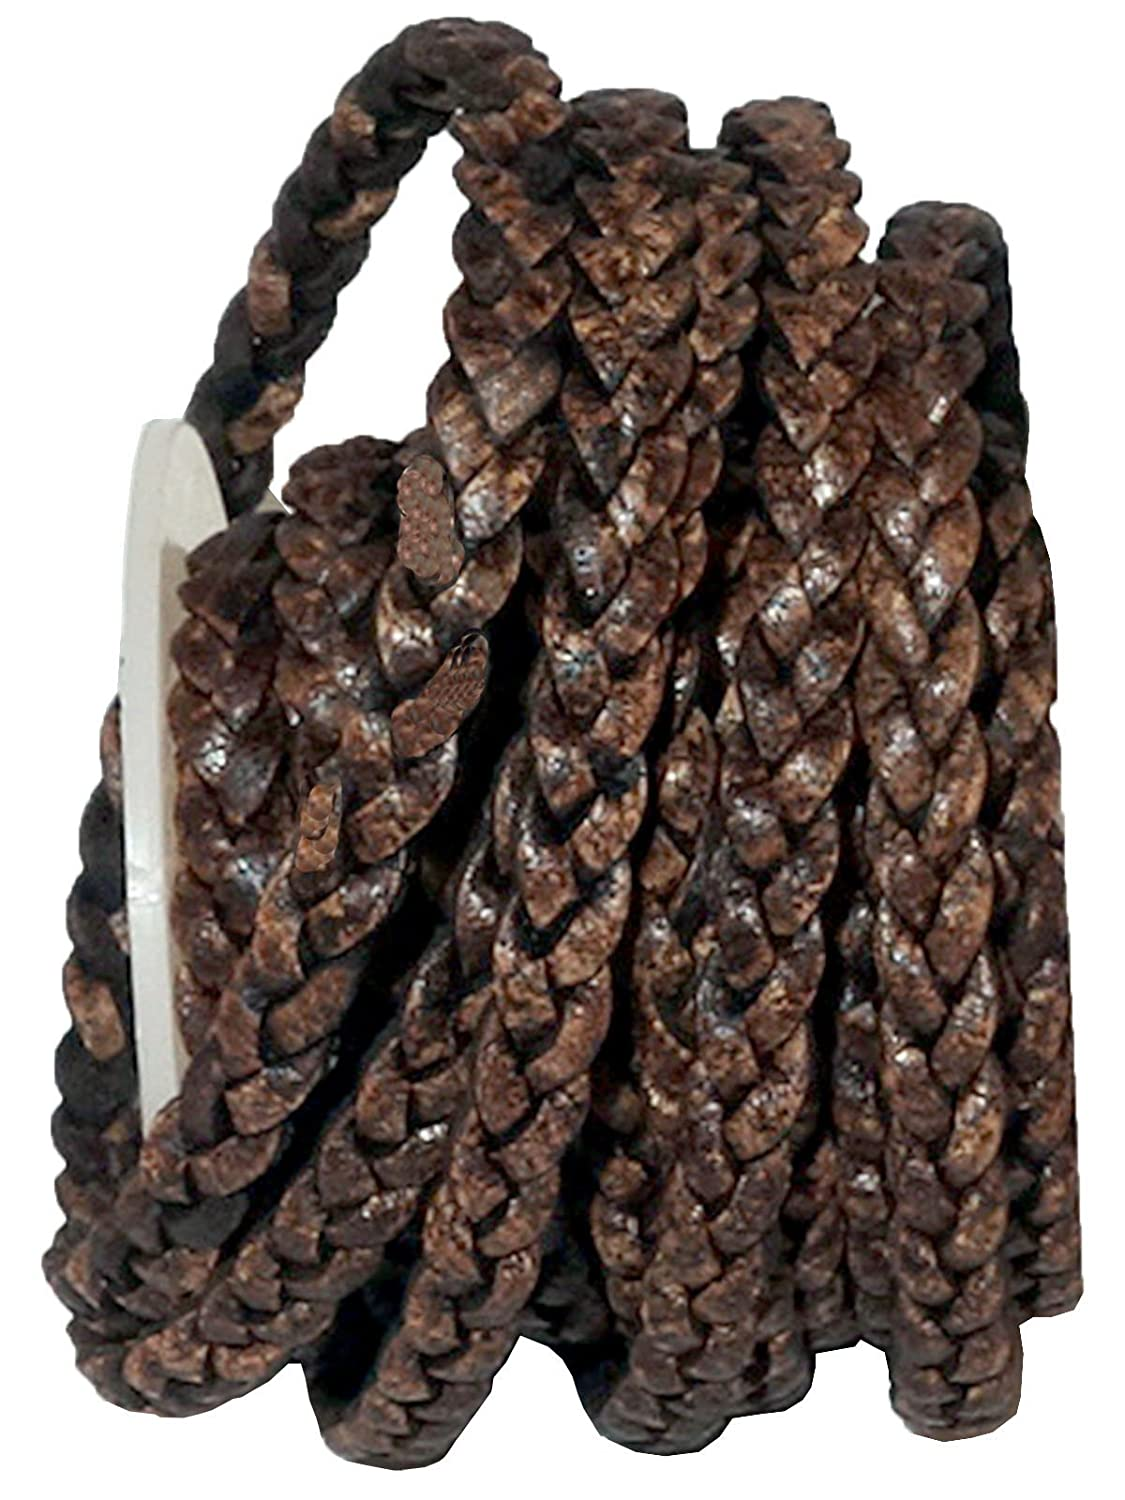 cords craft 5mm 3 Ply Flat Braided Genuine Leather Cord, Dark Brown Color, Hand Braided, Roll of 5 Meters J1-D2